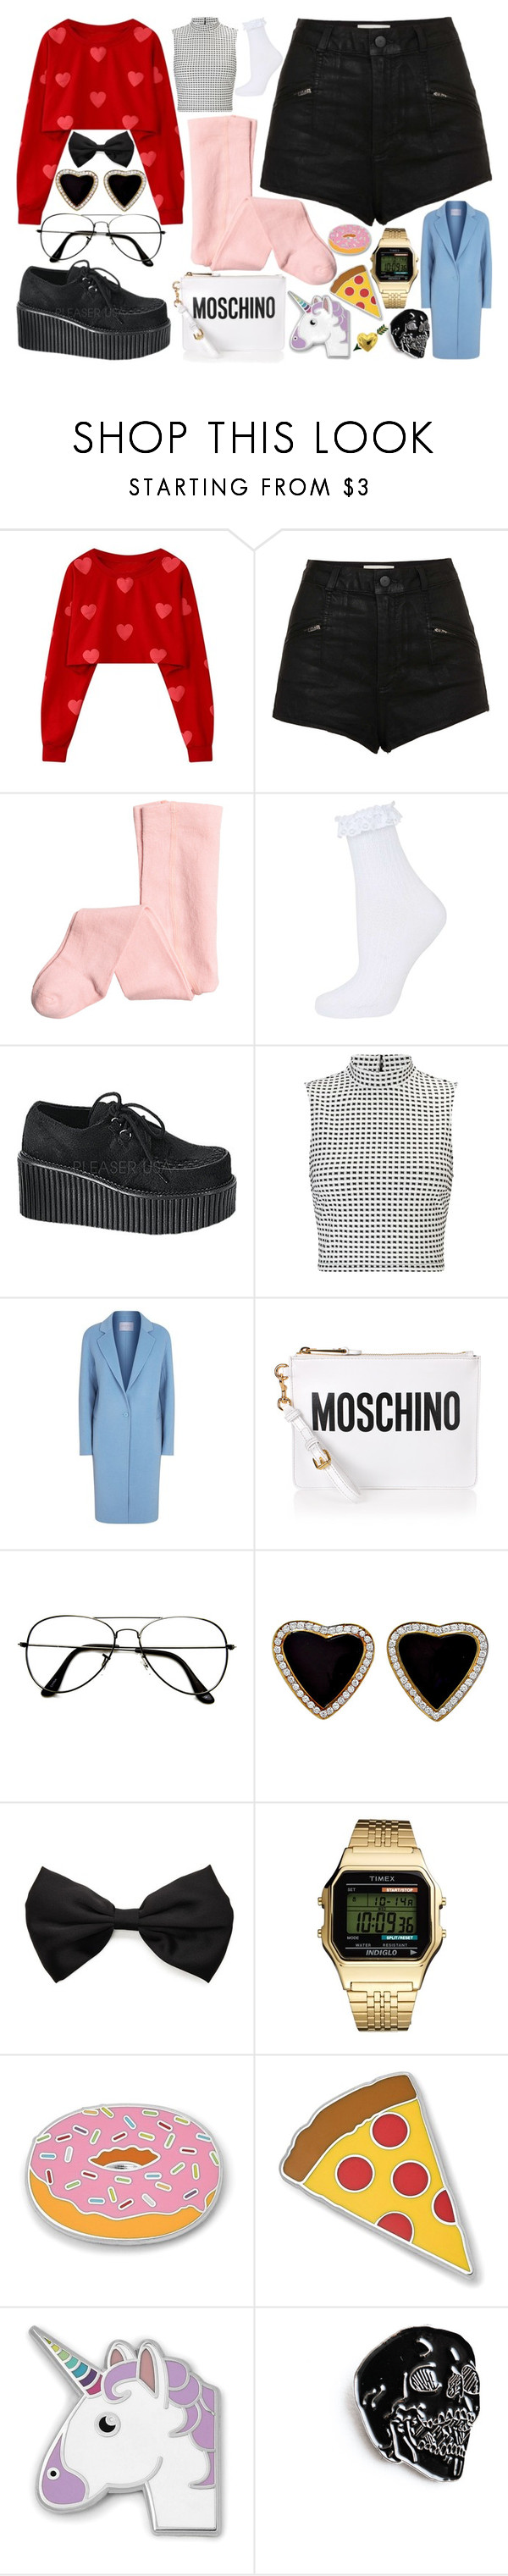 """""""Untitled #409"""" by queenfangirl on Polyvore featuring Topshop, Demonia, Miss Selfridge, Sandro, Moschino, ZeroUV, Forever 21, Timex, FOSSIL and Van Cleef & Arpels"""